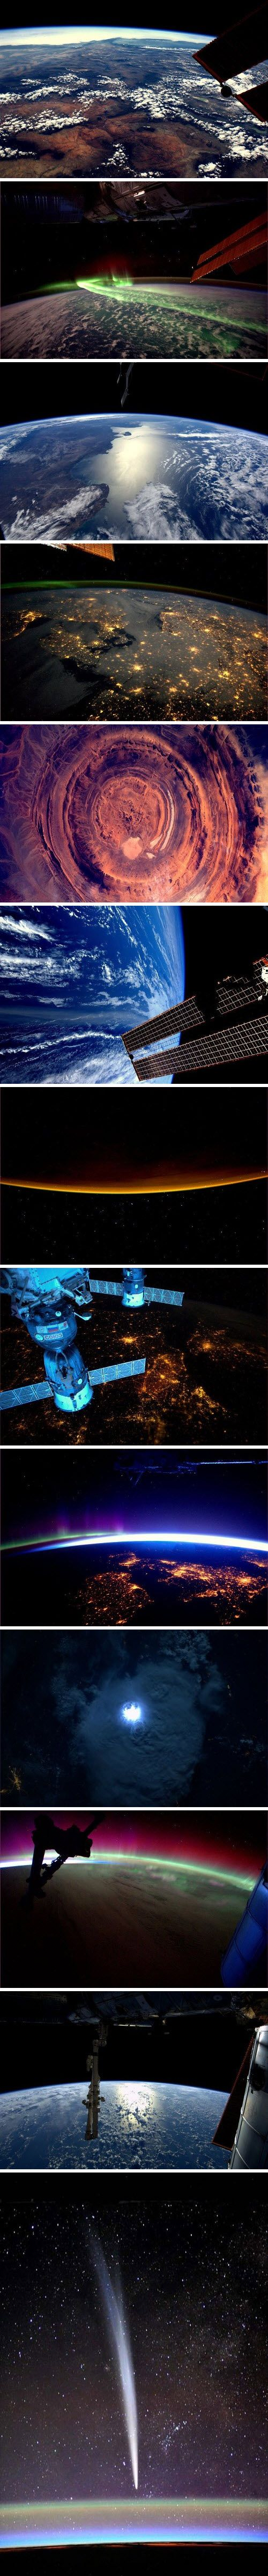 Pictures from space by astronaut Andre Kipersa... LOVE   ... technically, this should go on a board called, the earth, or space, but I don't have one, so the stars it is!